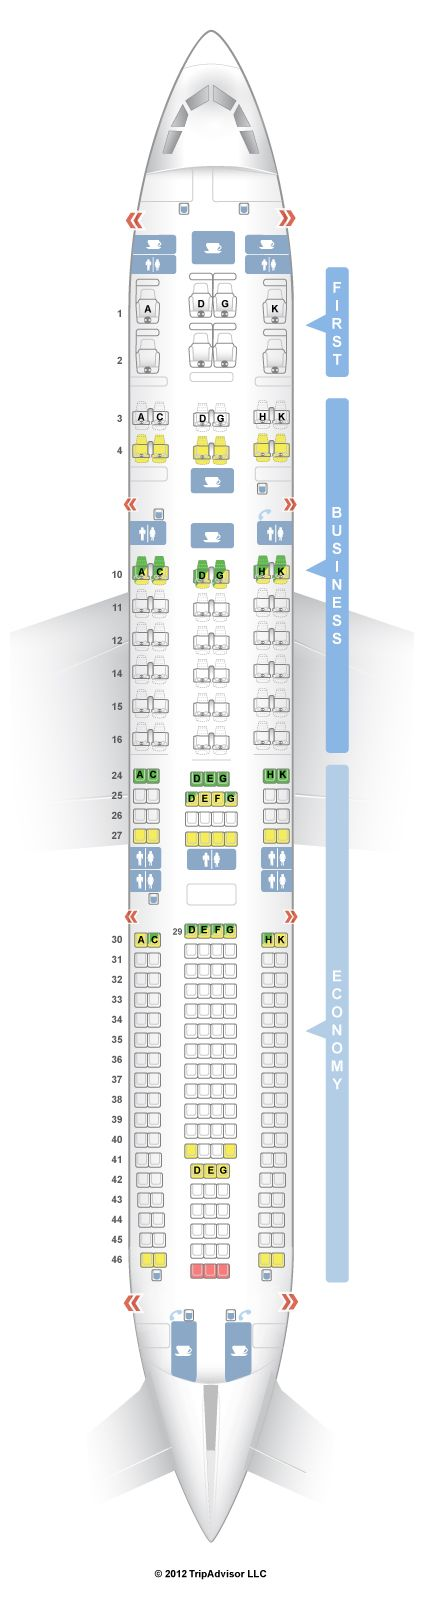 SeatGuru Seat Map Lufthansa Airbus A330-300 (333) V2, FRA-DOH and DOH-FRA